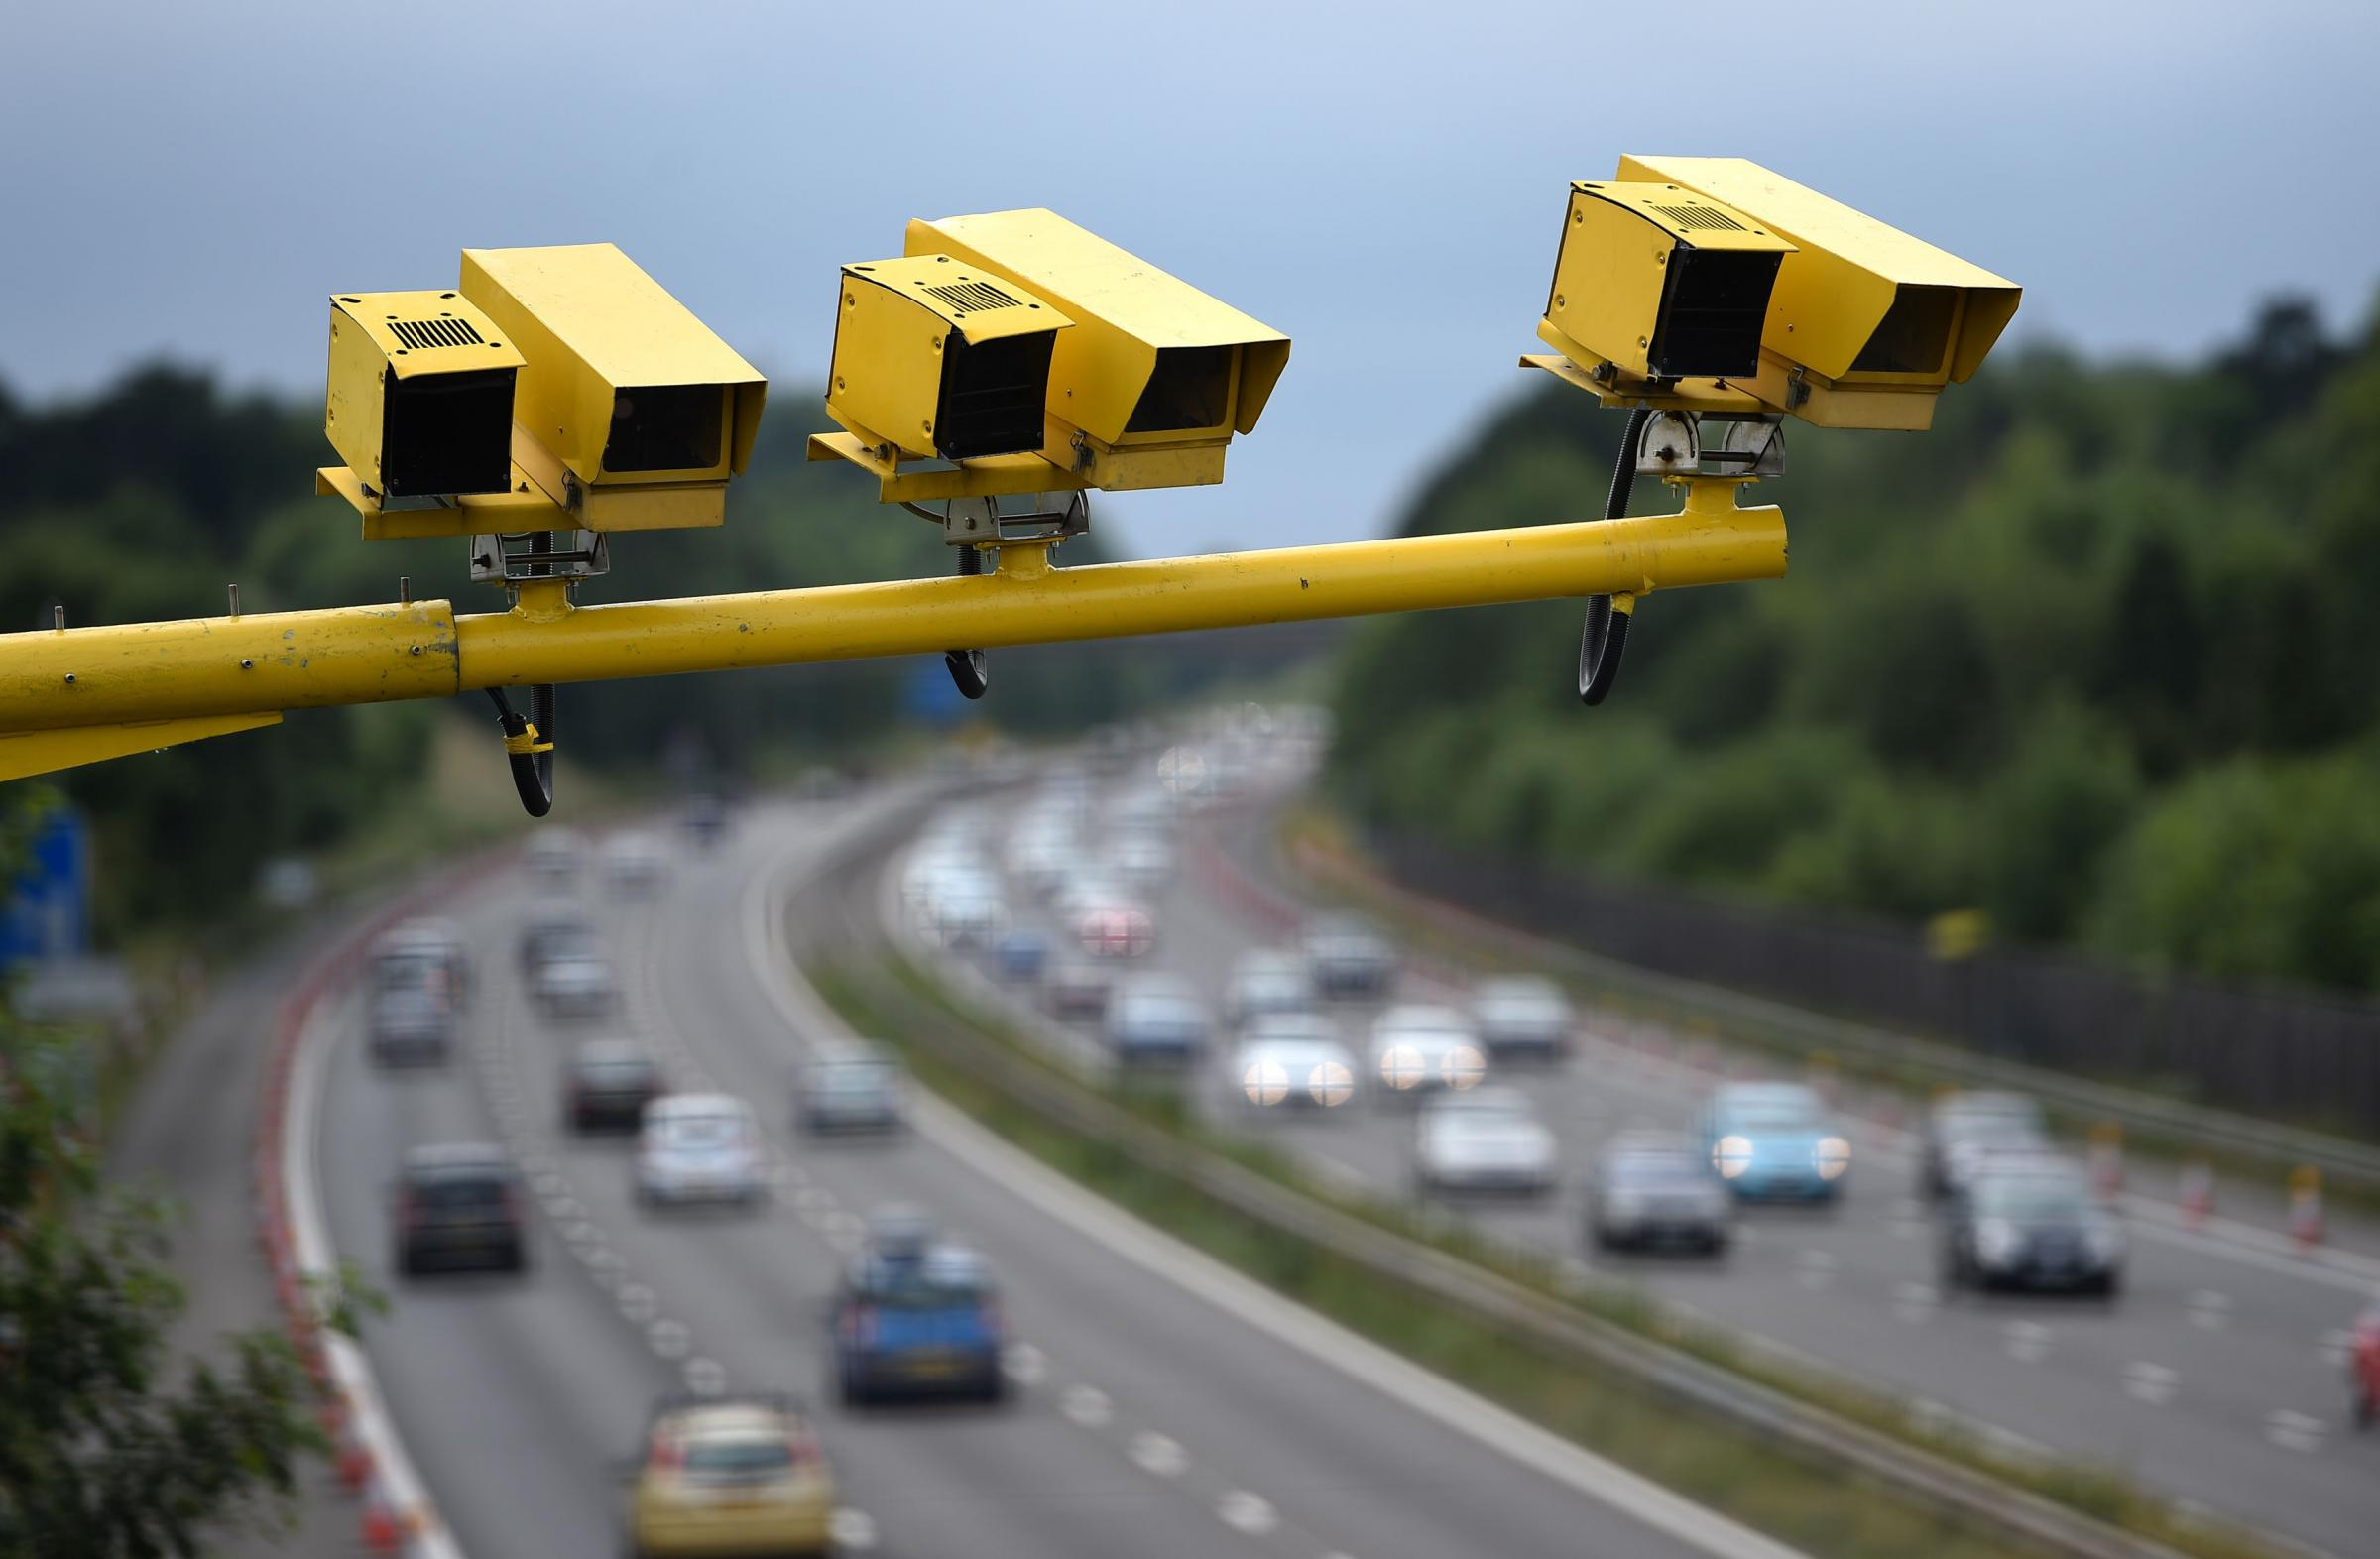 EMBARGOED TO 0900 TUESDAY MAY 31 File photo dated 28/06/15 of three SPECS Average Speed cameras in position on the M3 motorway in Hampshire, as average speed cameras are monitoring drivers on more than 250 miles of Britain's roads, according to a new